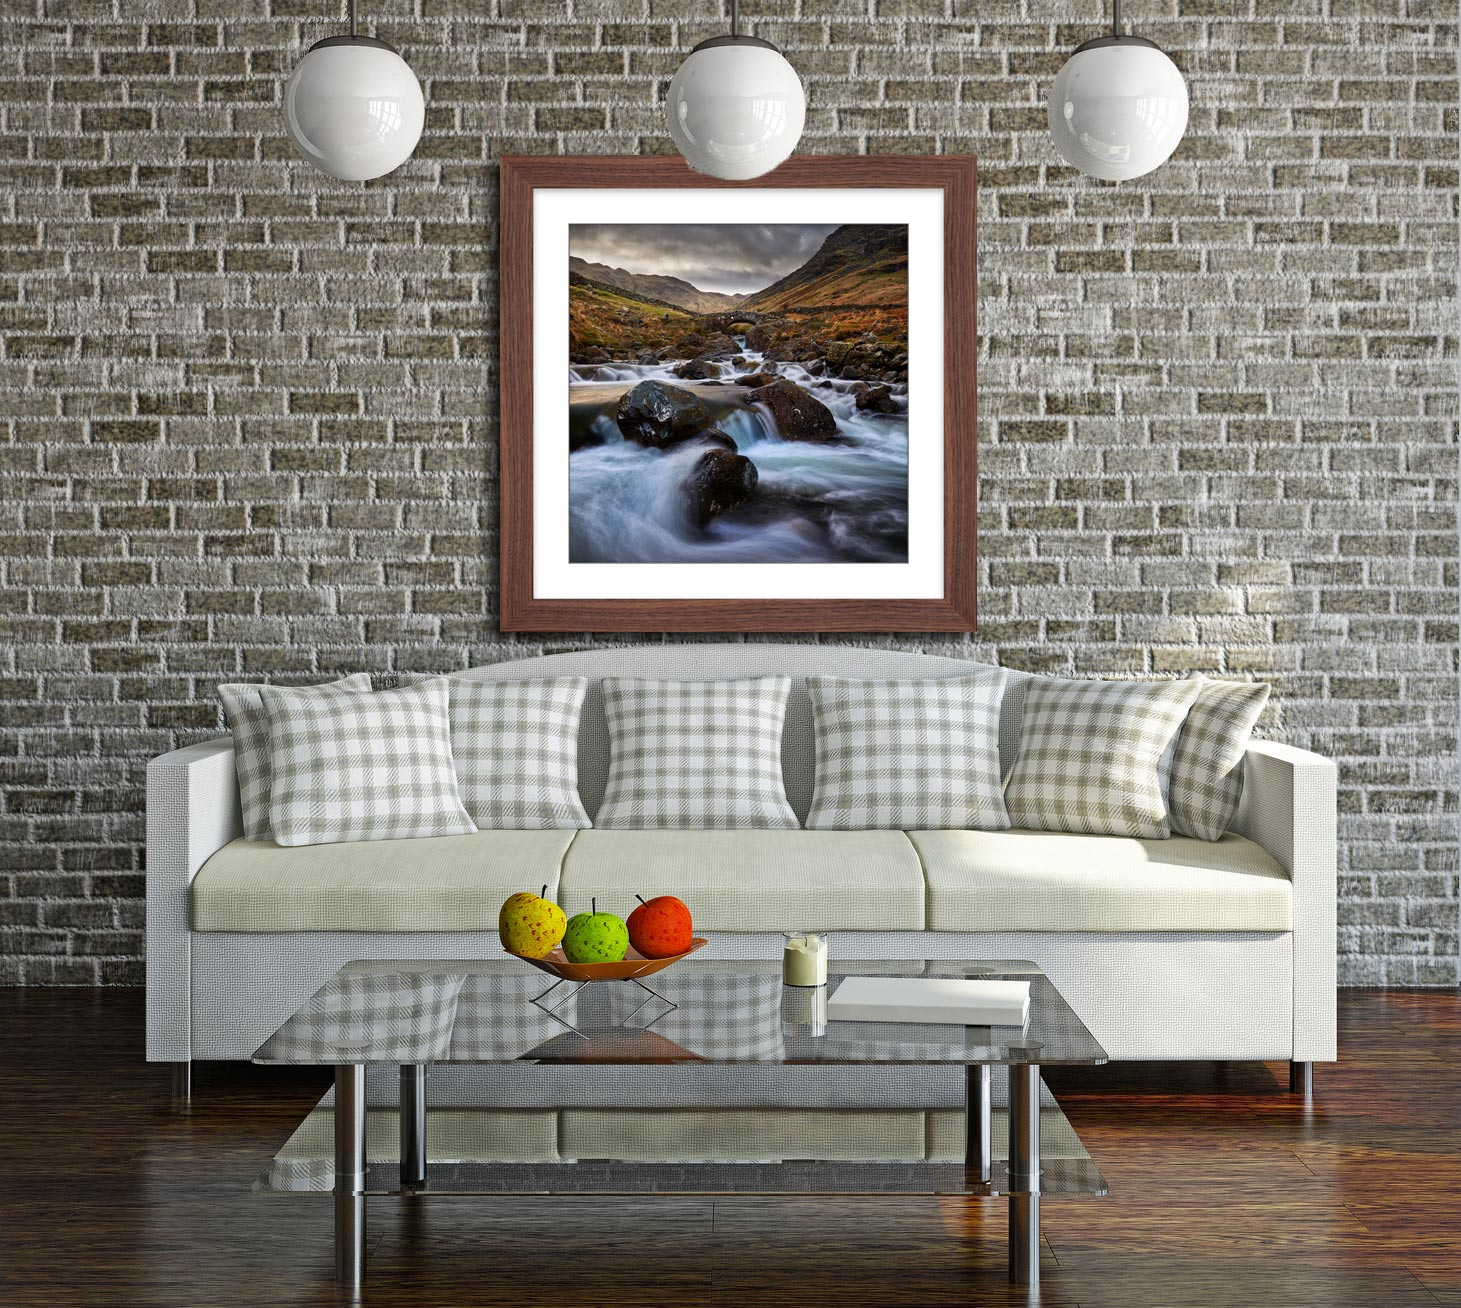 Stockley Bridge Grains Gill - Framed Print with Mount on Wall